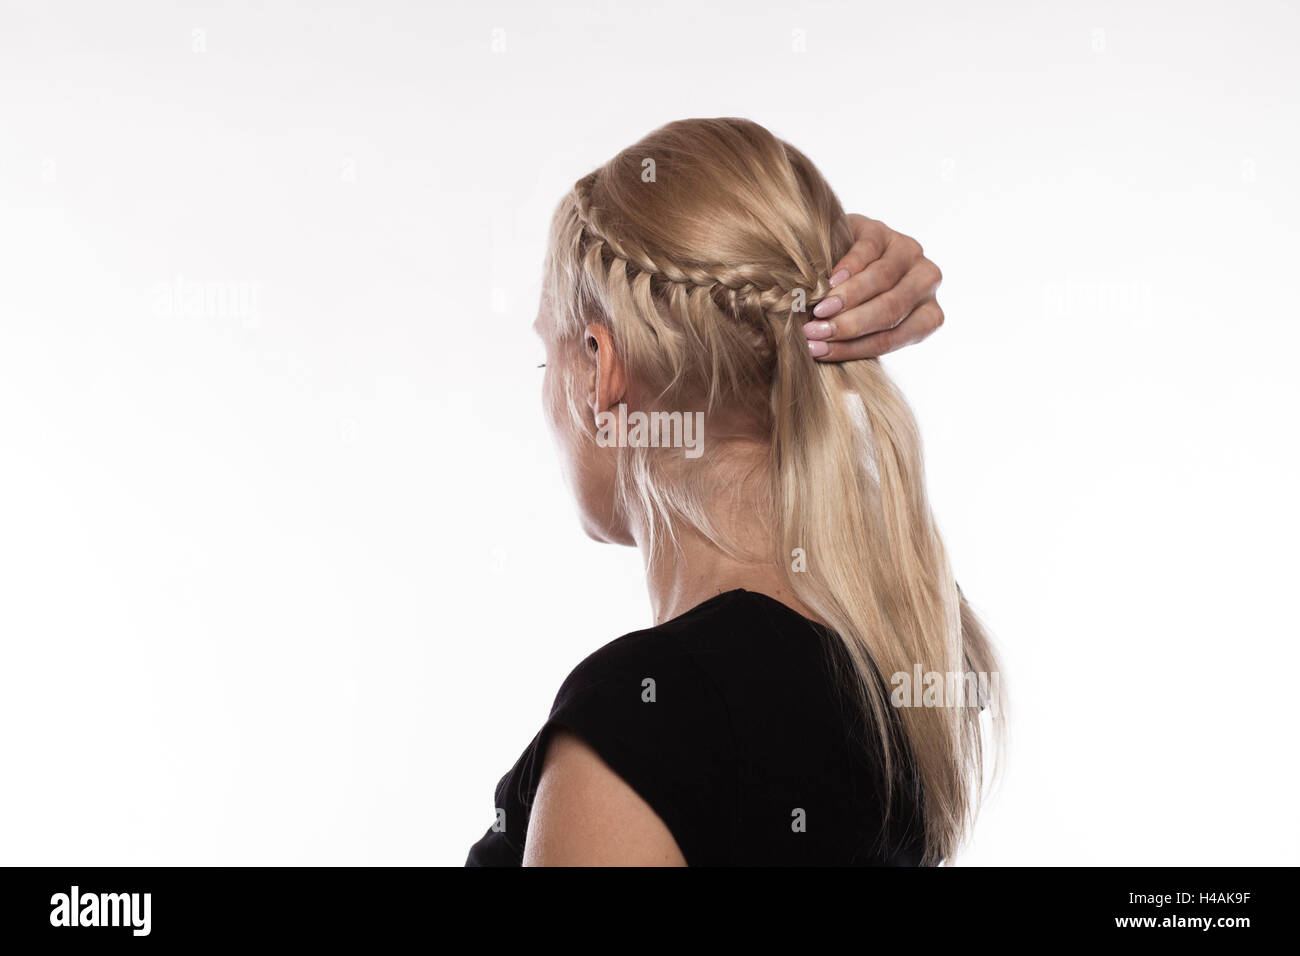 Excellent Instructions French Plait Step 3 Of 4 Stock Photo Royalty Free Hairstyles For Men Maxibearus